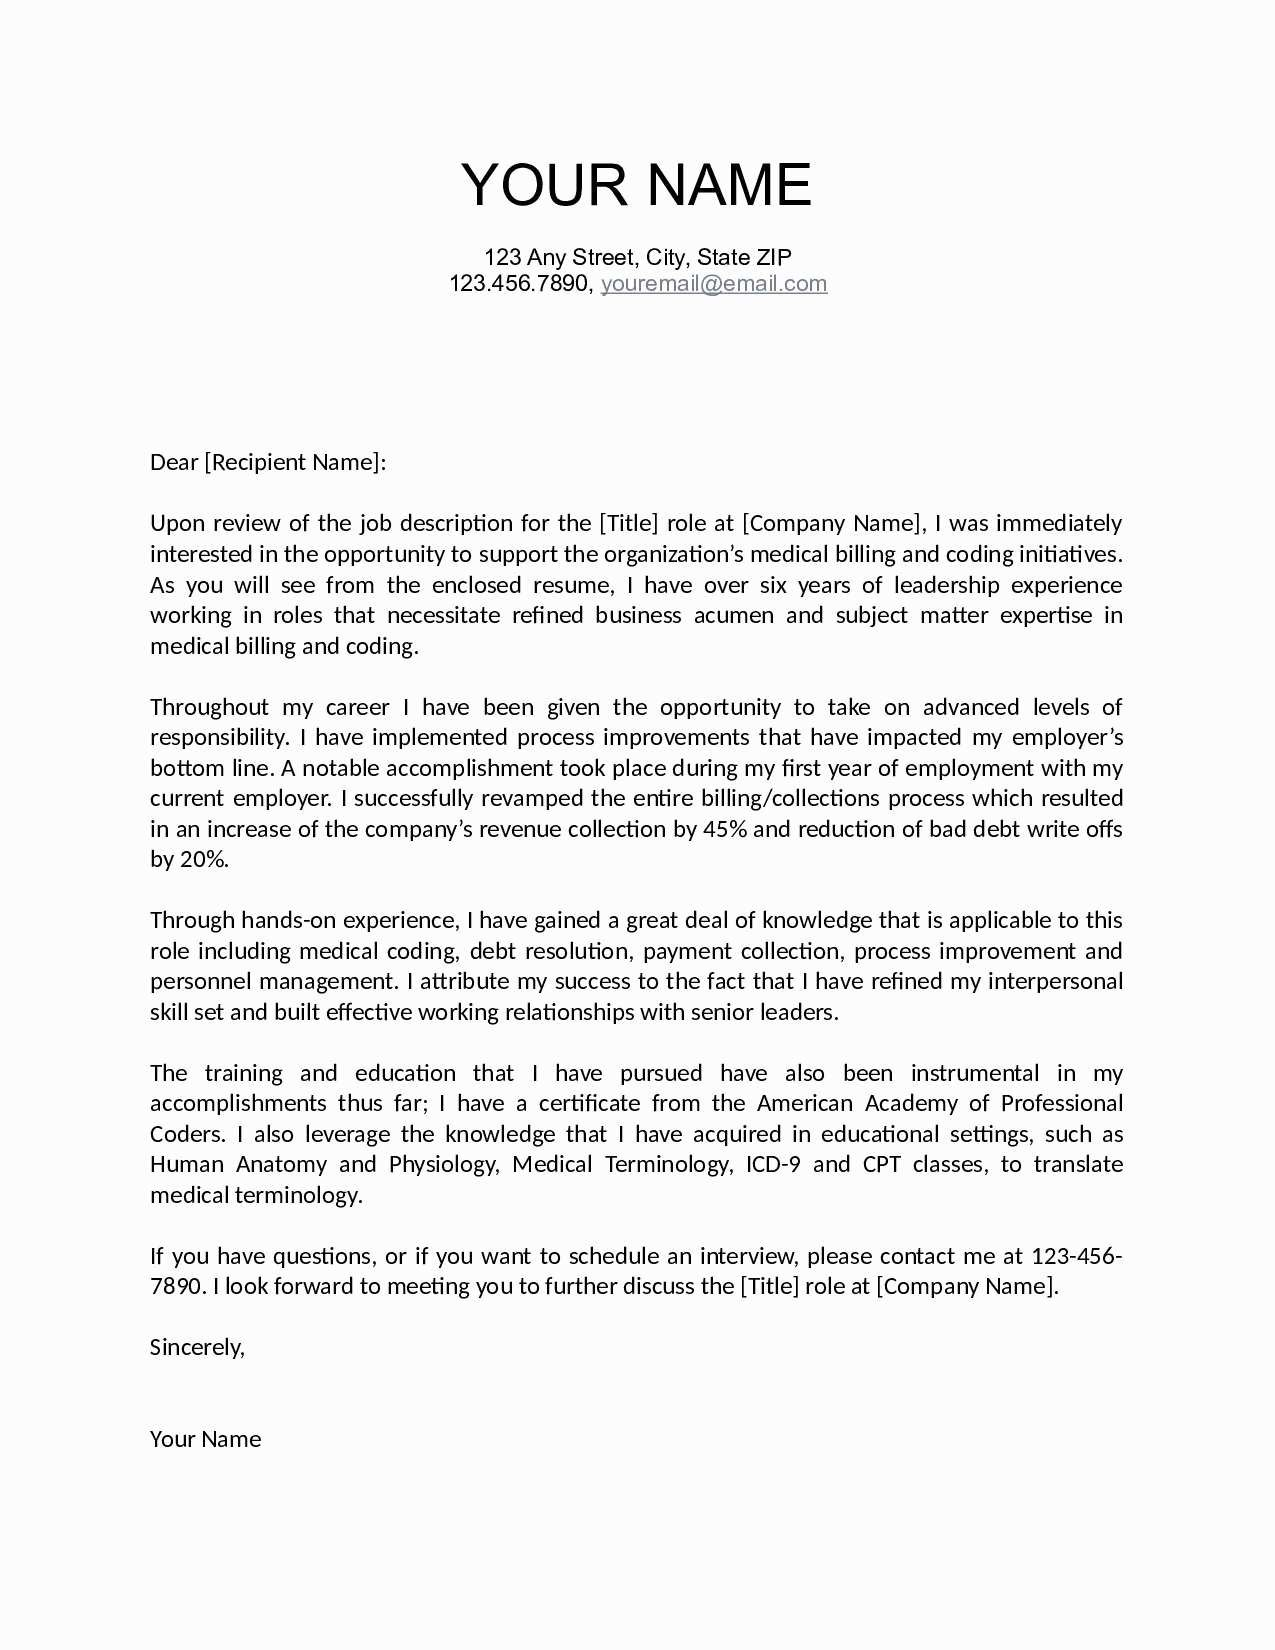 Engineering Cover Letter Template Collection | Letter Templates